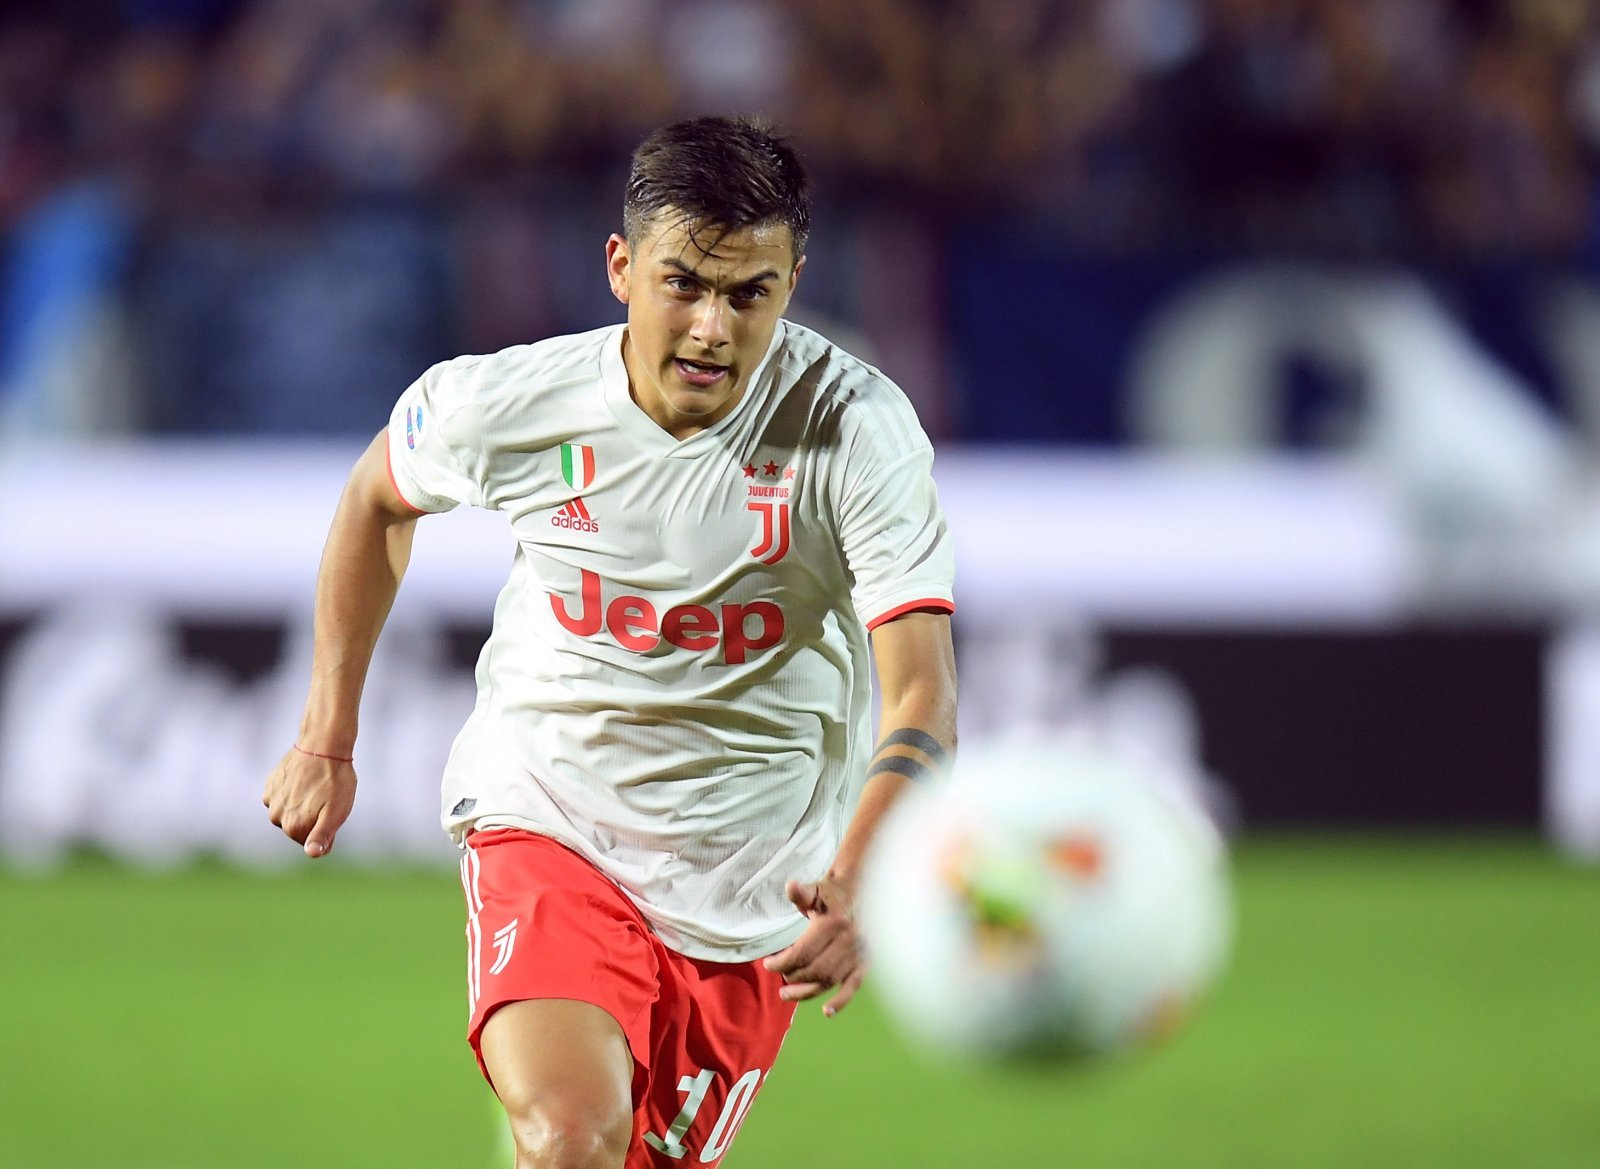 Profit Players: Juventus' Paulo Dybala could help out amid any financial problems